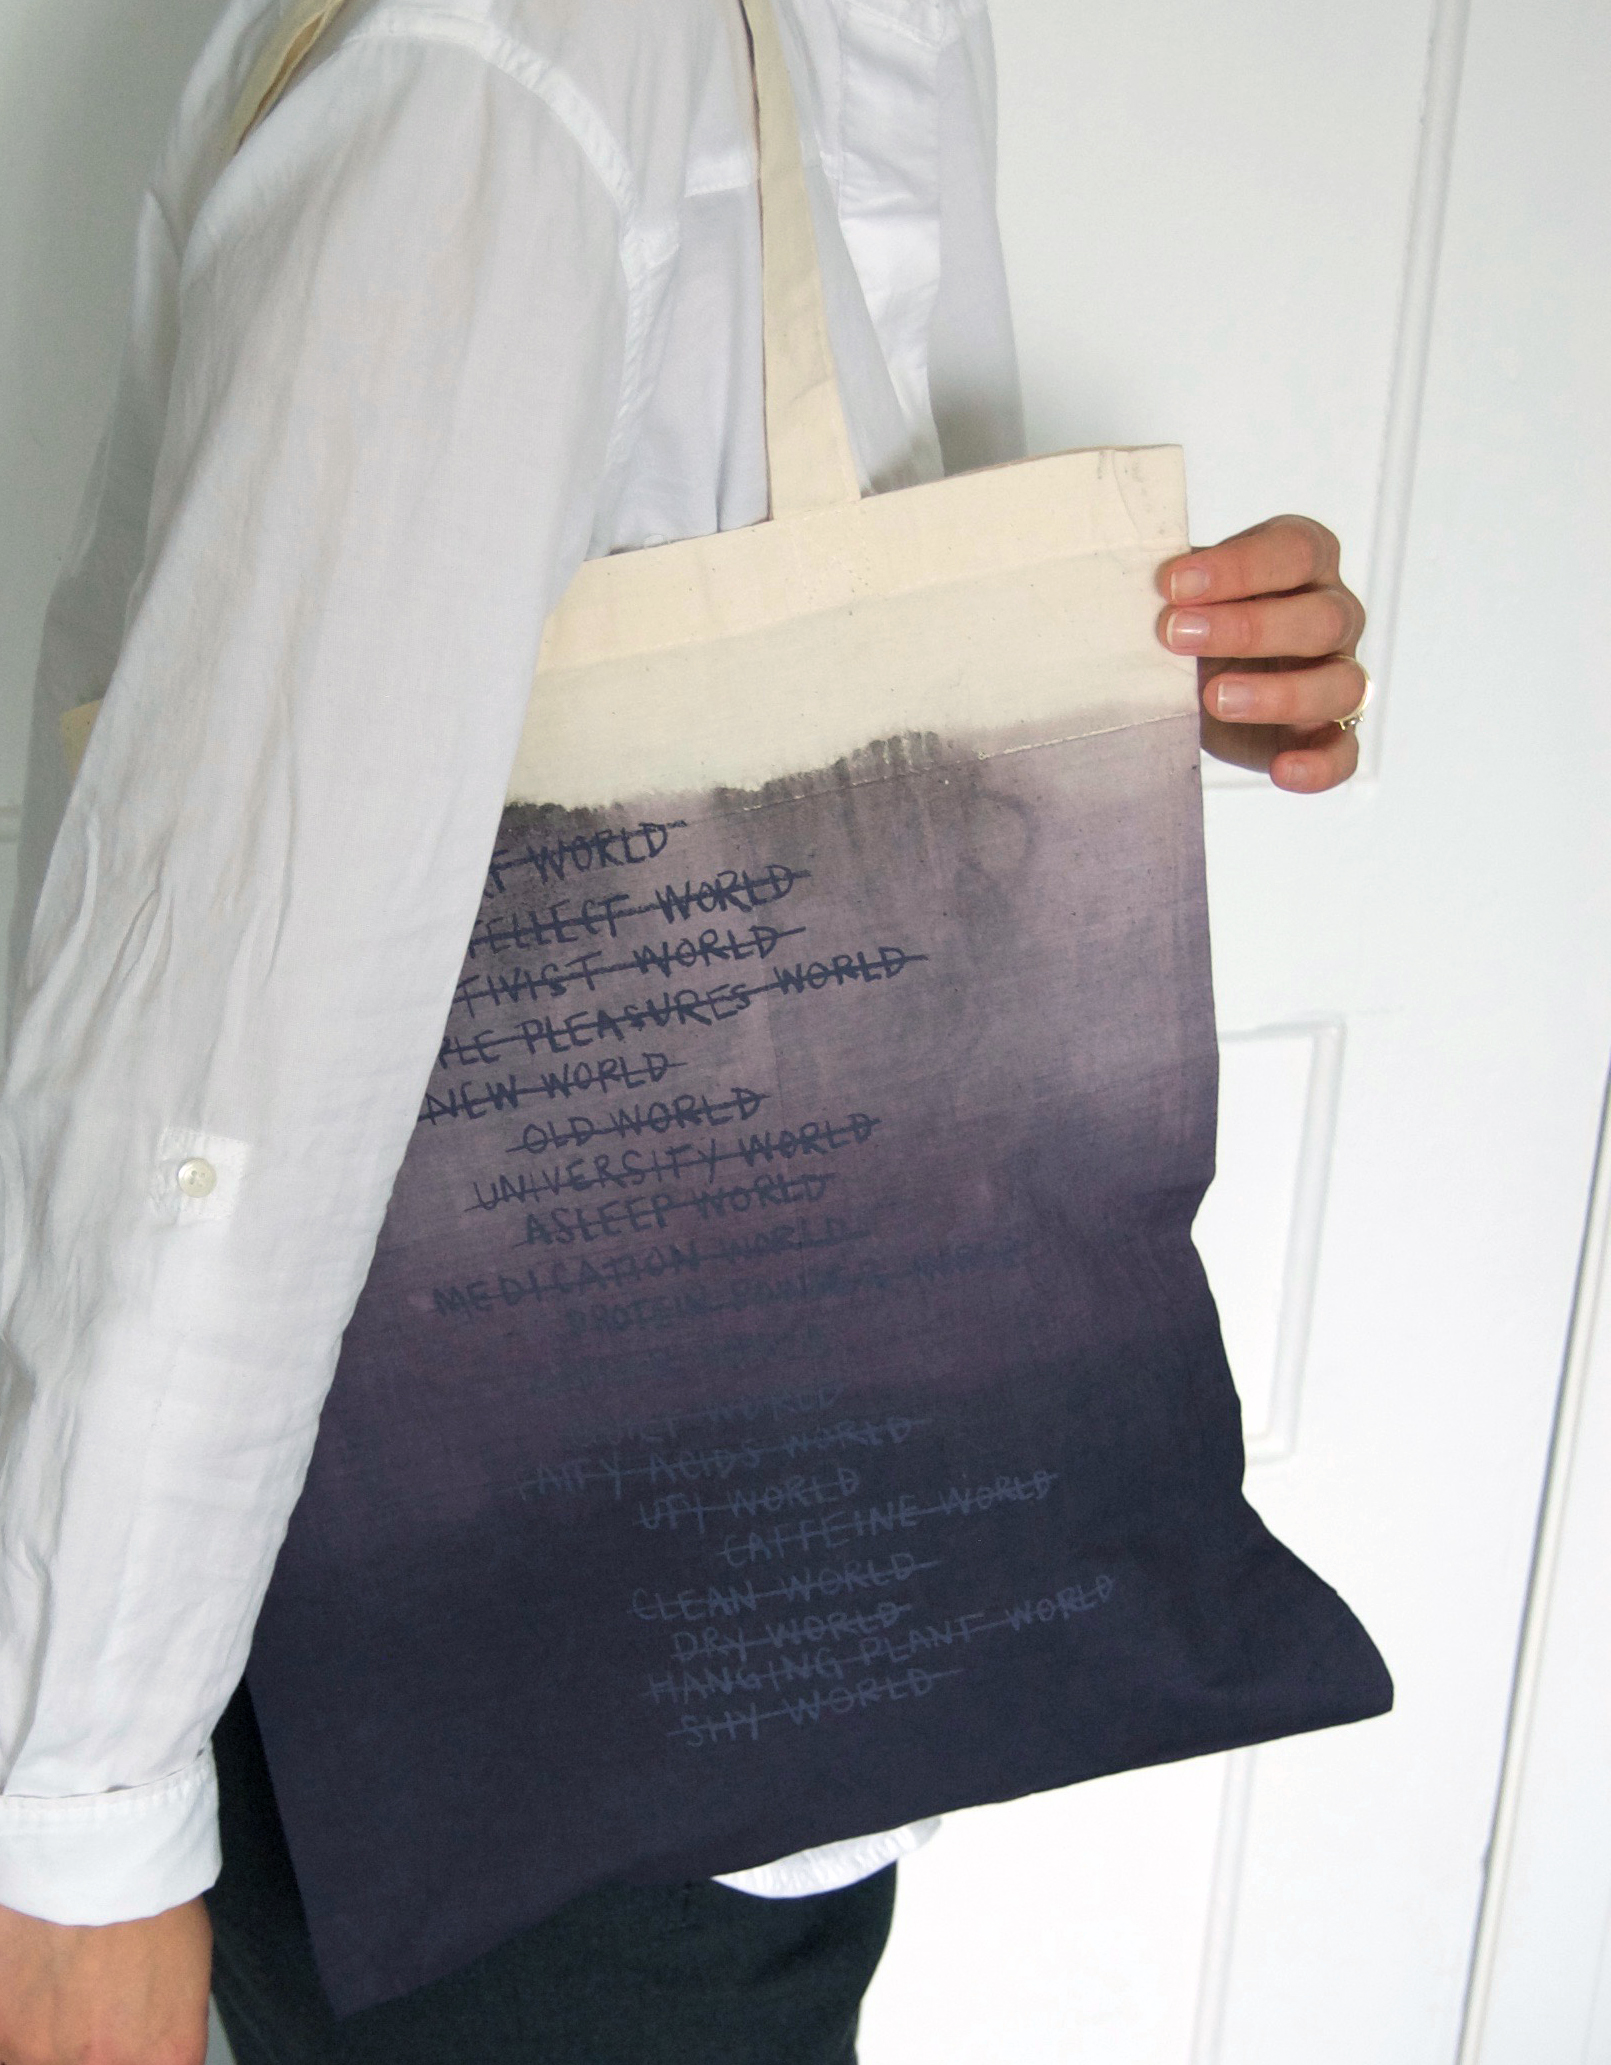 Hannah Enkel 'The Worlds Tote'SAGAN EDITIONS 2016. Hand dyed, silkscreened 100% cotton tote bag. Edition size: 12.